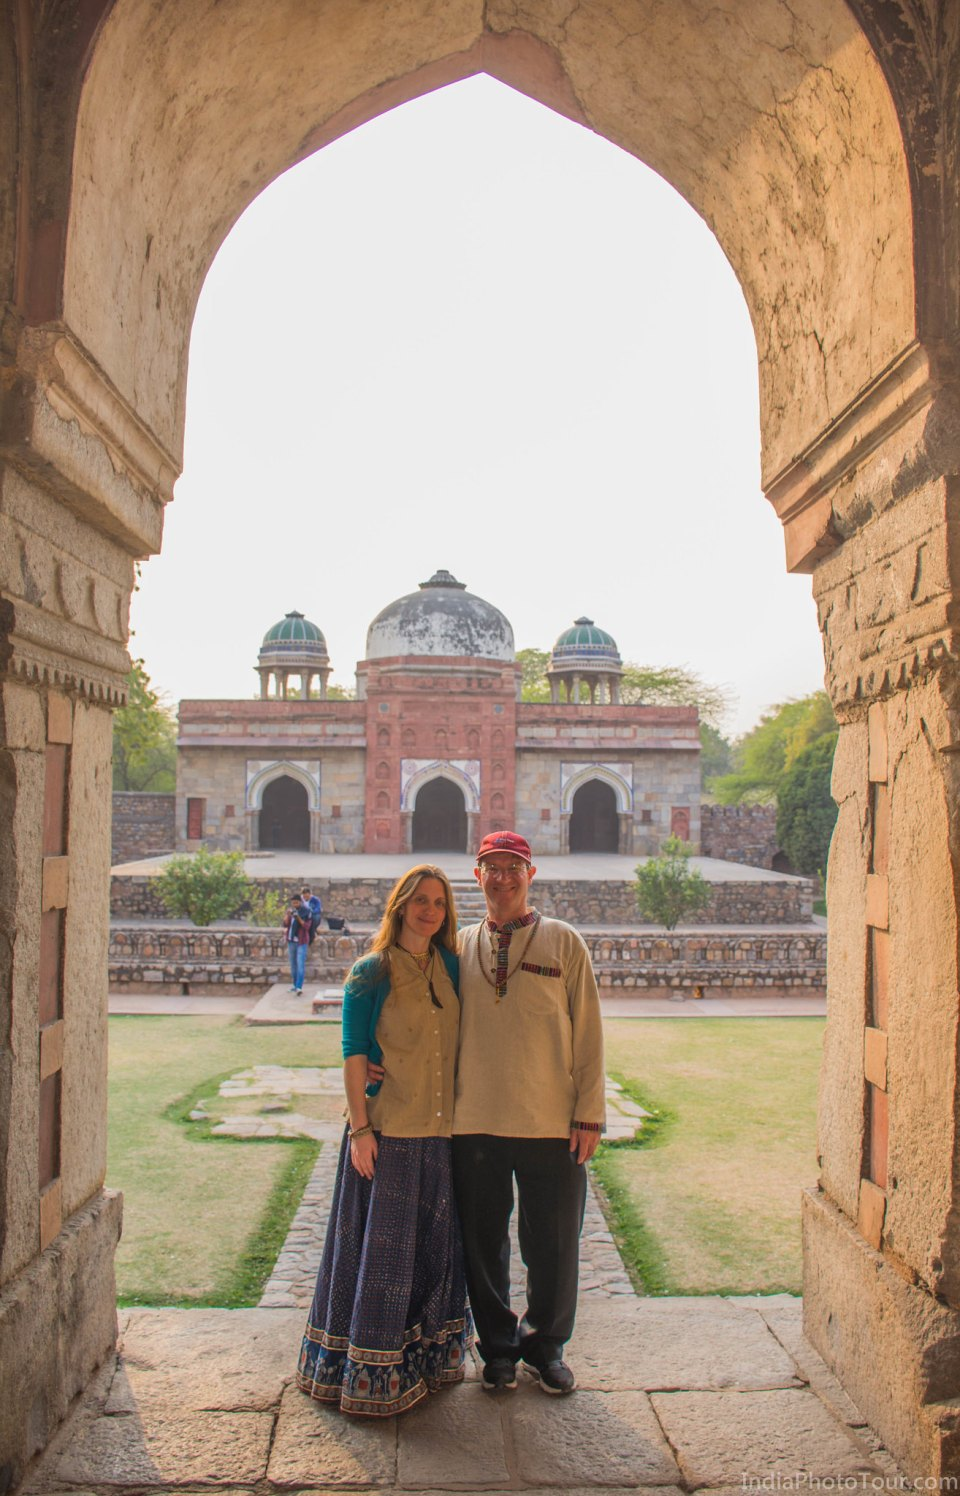 Starting at Isa Khan's tomb in Humayun's Tomb complex